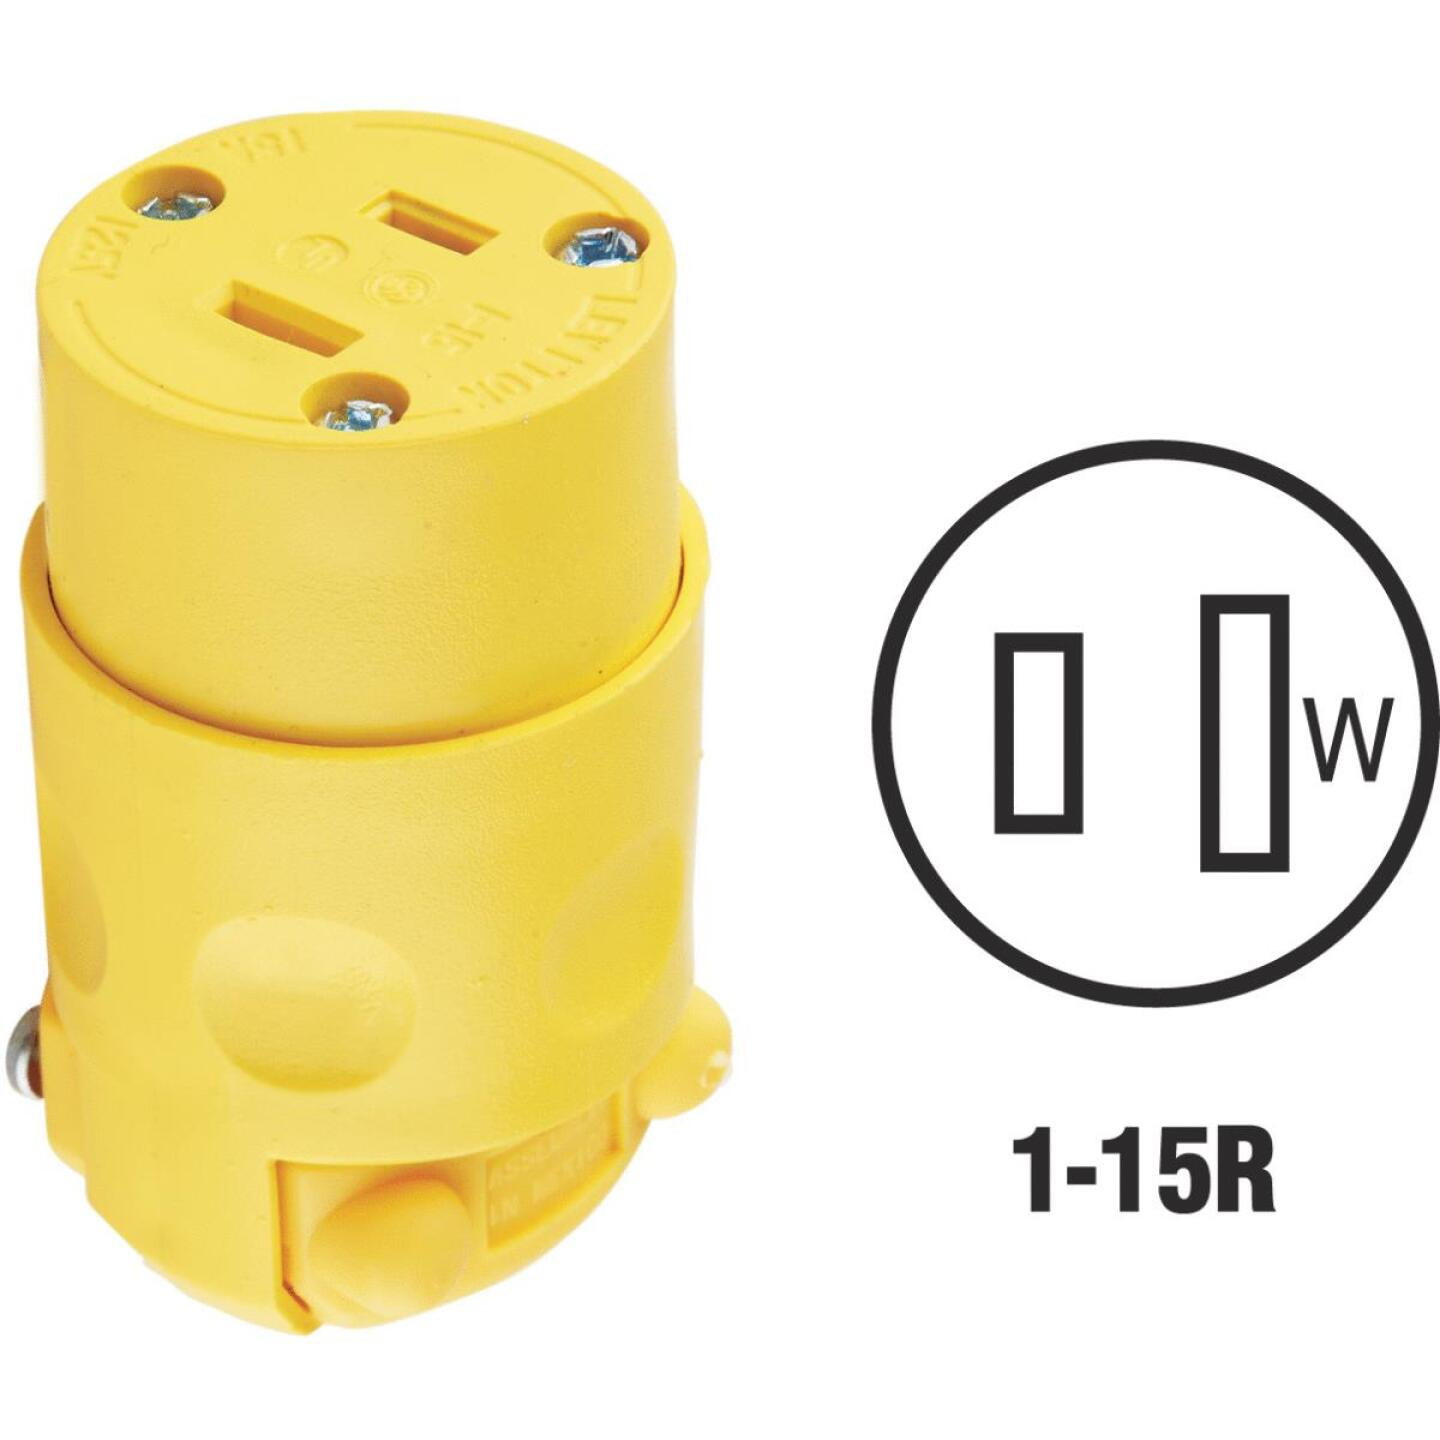 Leviton 15A 125V 2-Wire 2-Pole Residential Grade Cord Connector Image 1